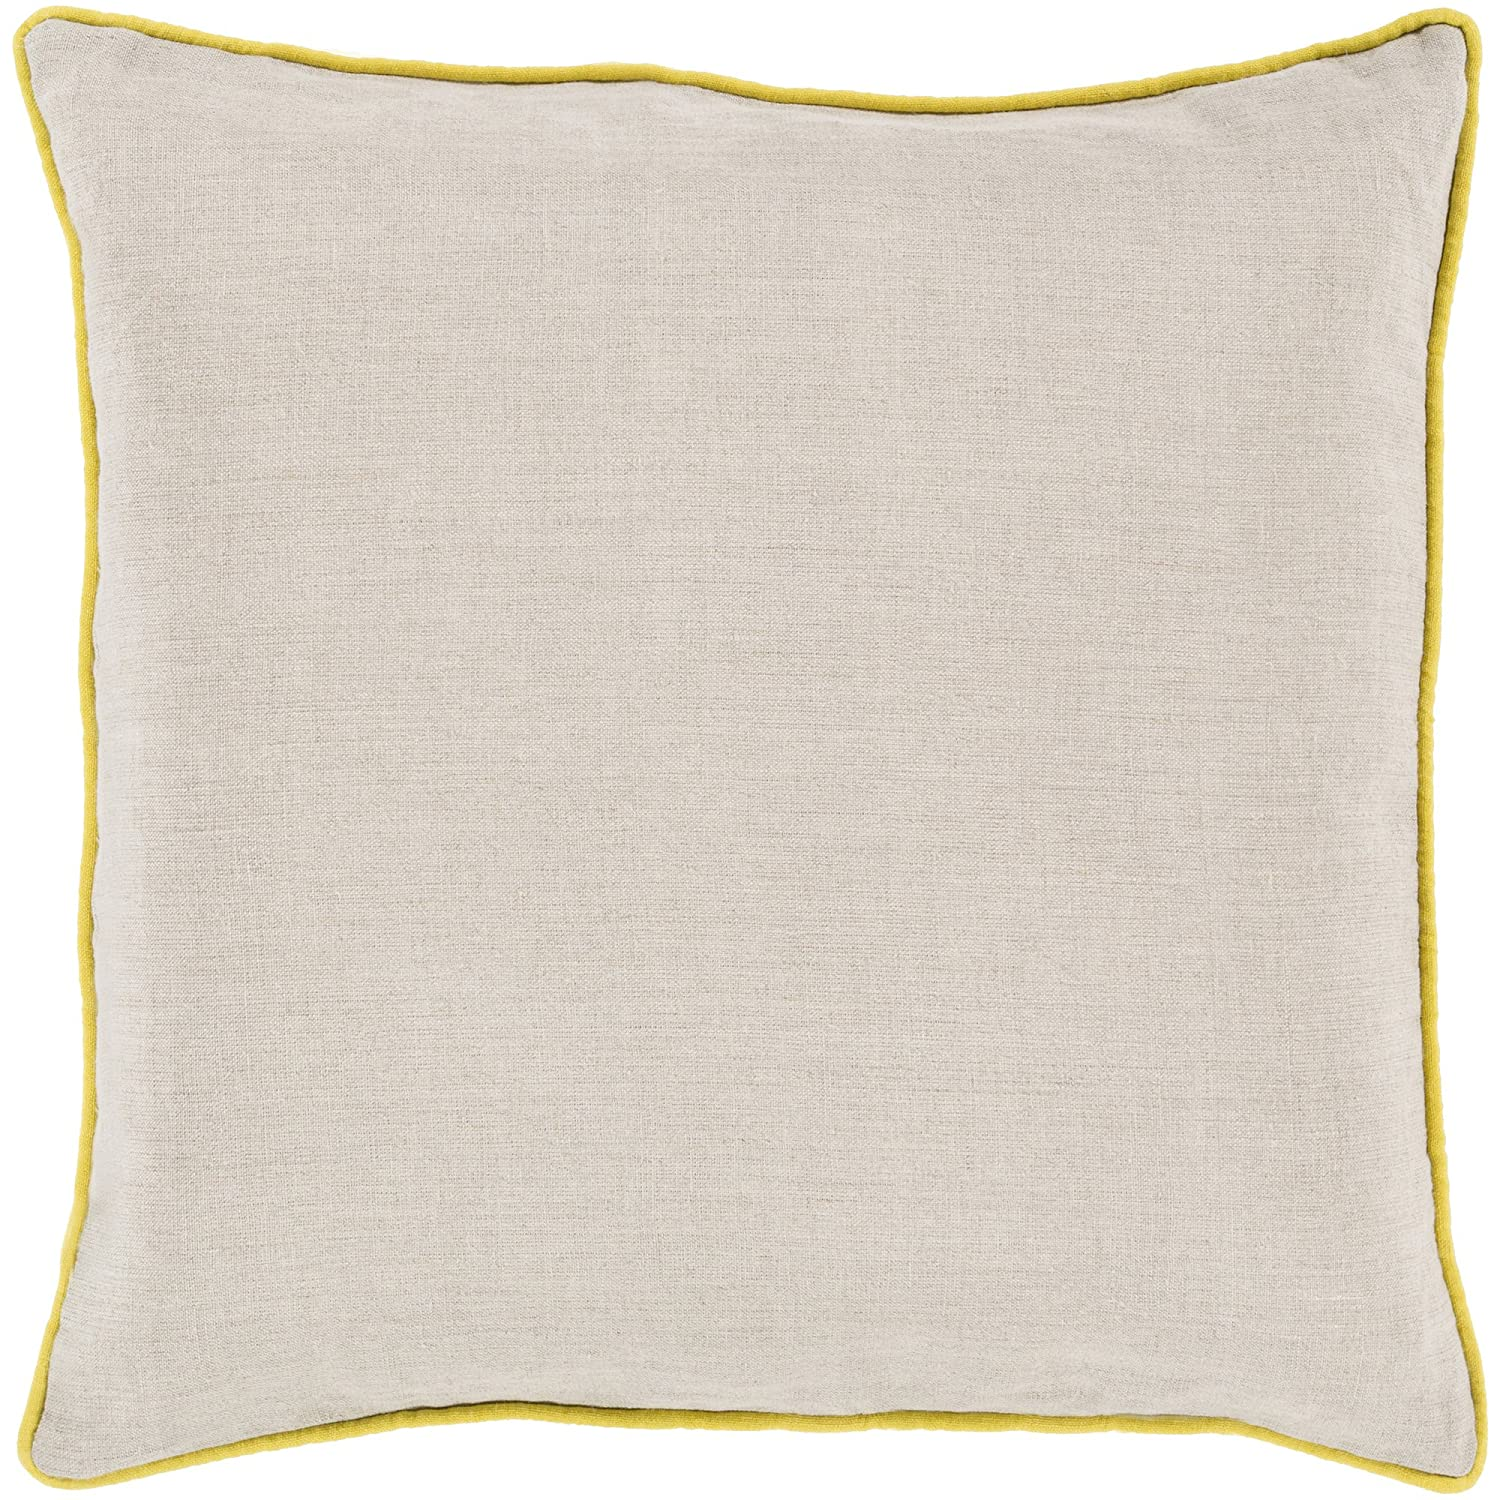 Surya Rug LP003-2222P Square Beige Decorative Poly Fiber Pillow 22 x 22 in. 22-Inch by 22-Inch  B00H2KGSZ2